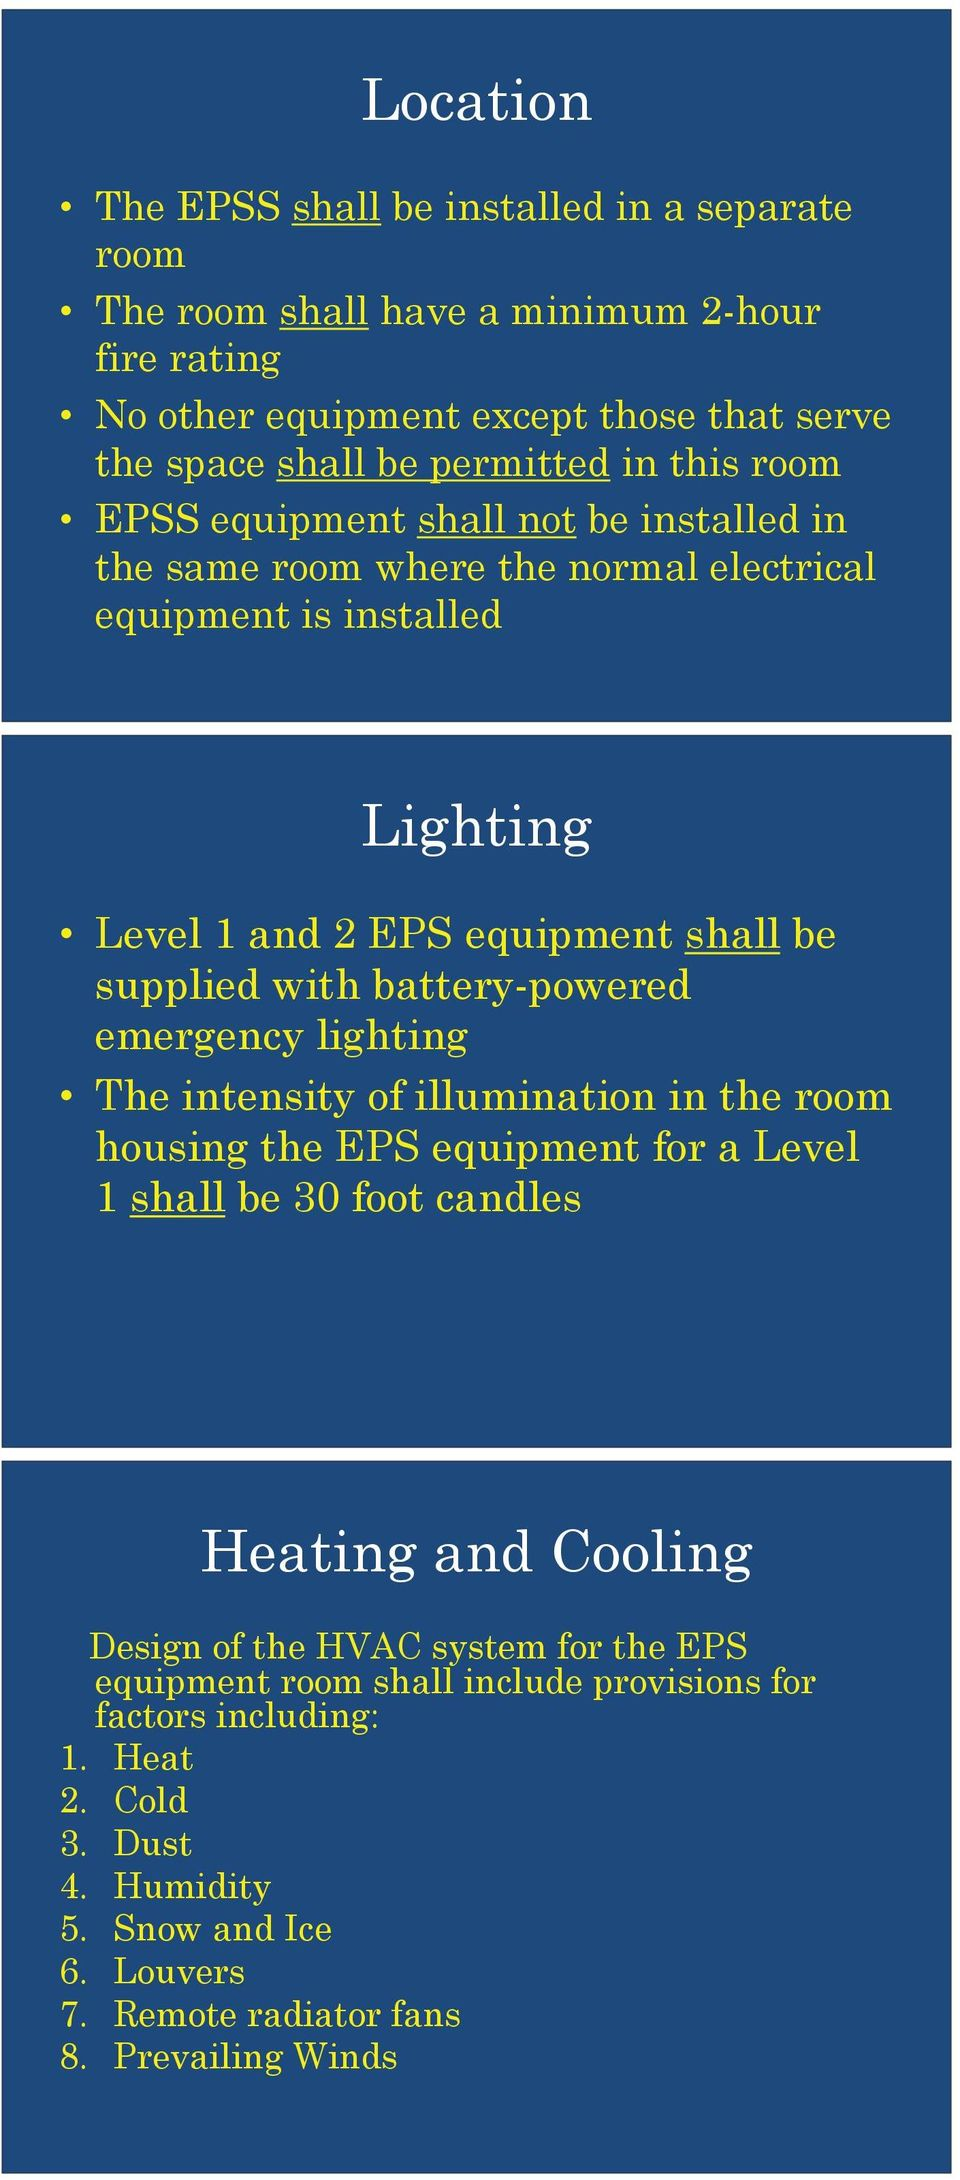 battery-powered emergency lighting The intensity of illumination in the room housing the EPS equipment for a Level 1 shall be 30 foot candles Heating and Cooling Design of the HVAC